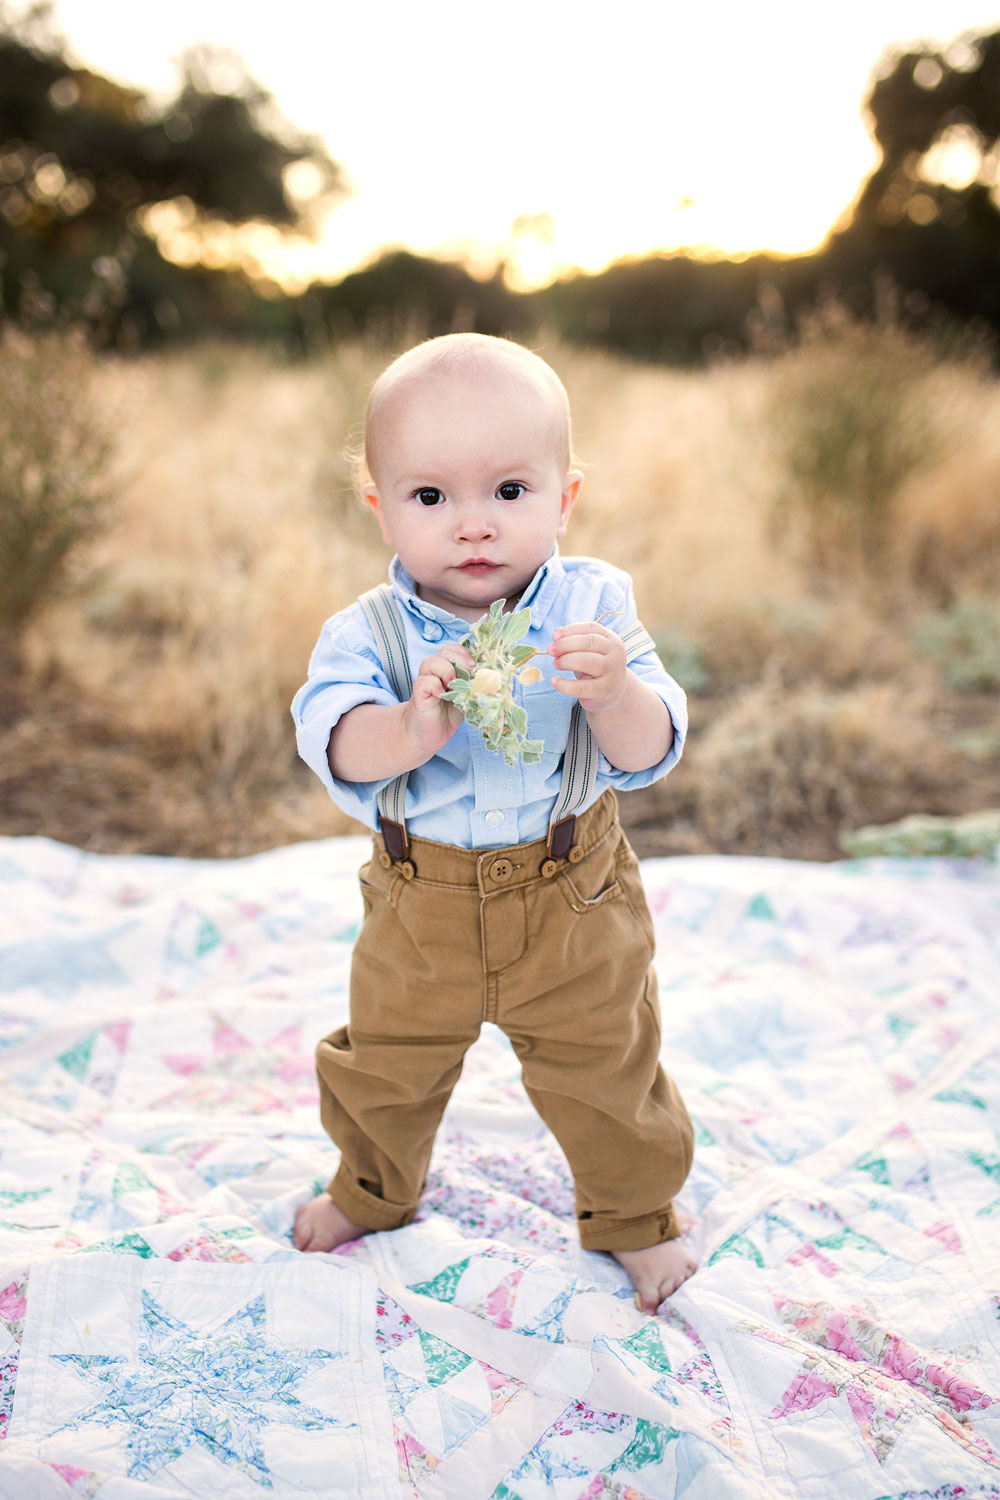 A One Year Old Baby Boy Standing On a Blanket Wearing Suspenders, Amy Wright Photography, Roseville Photographer